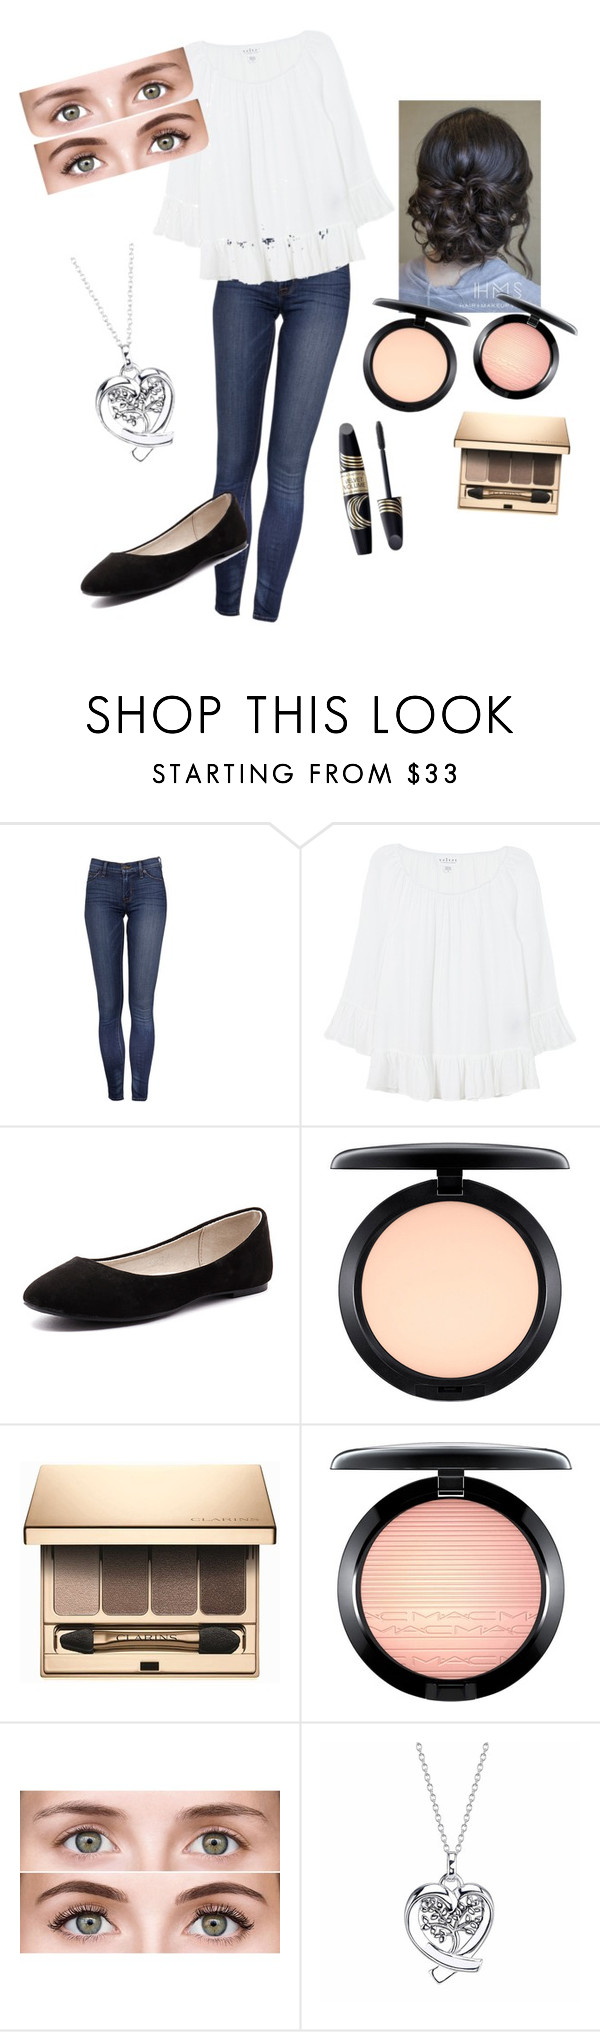 """Beautiful features"" by theizzybee-1 ❤ liked on Polyvore featuring beauty, Velvet, Verali, Max Factor, MAC Cosmetics, Clarins and Footnotes"